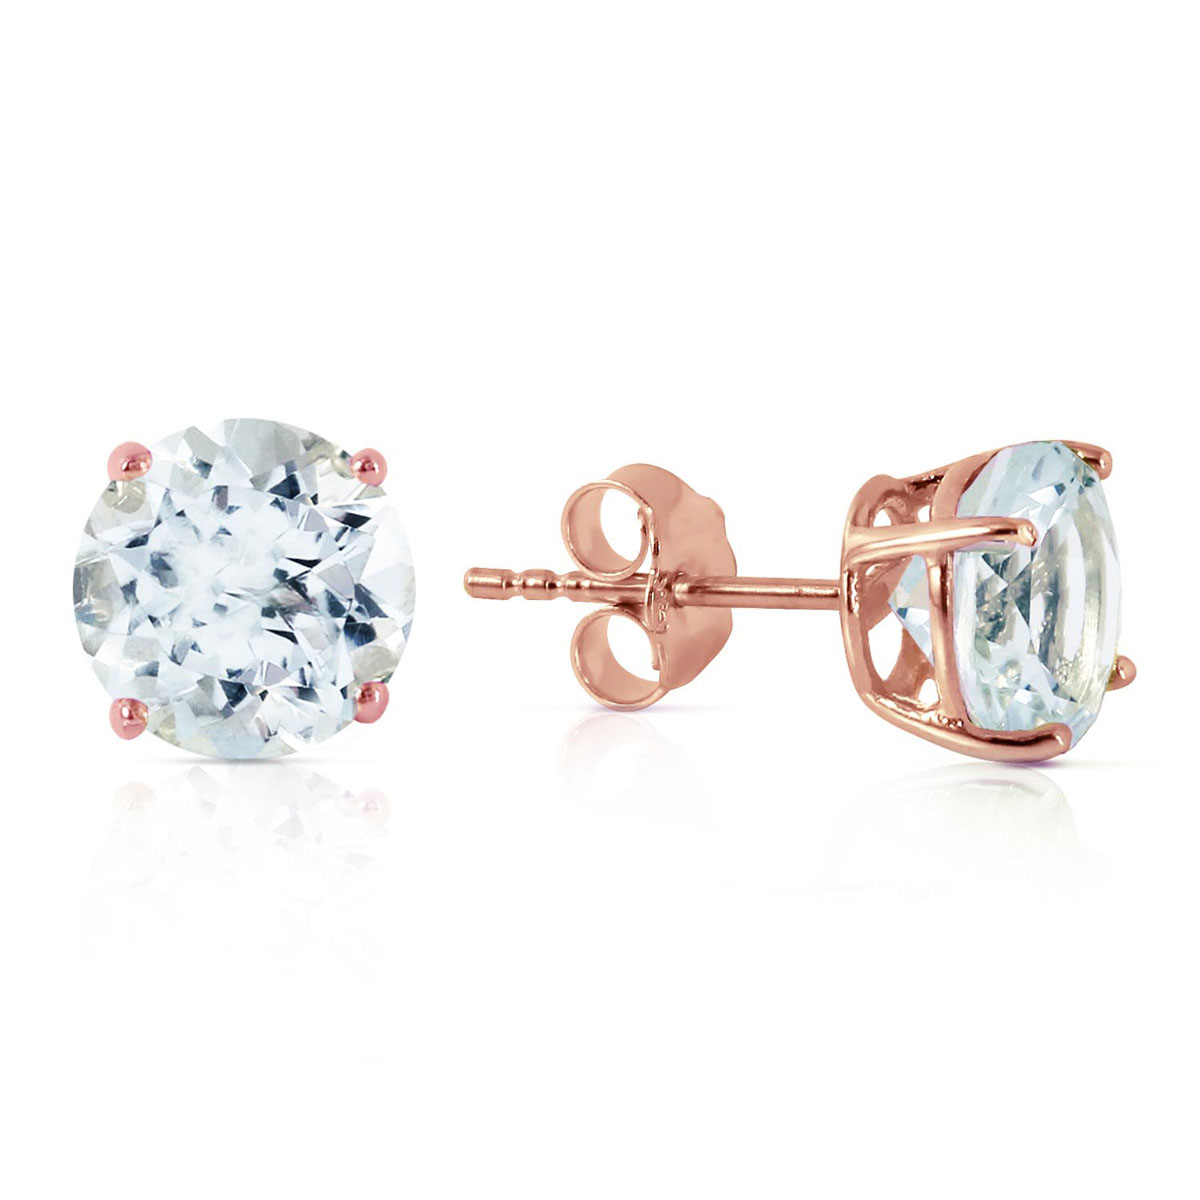 Aquamarine Stud Earrings 3.1 ctw in 9ct Rose Gold